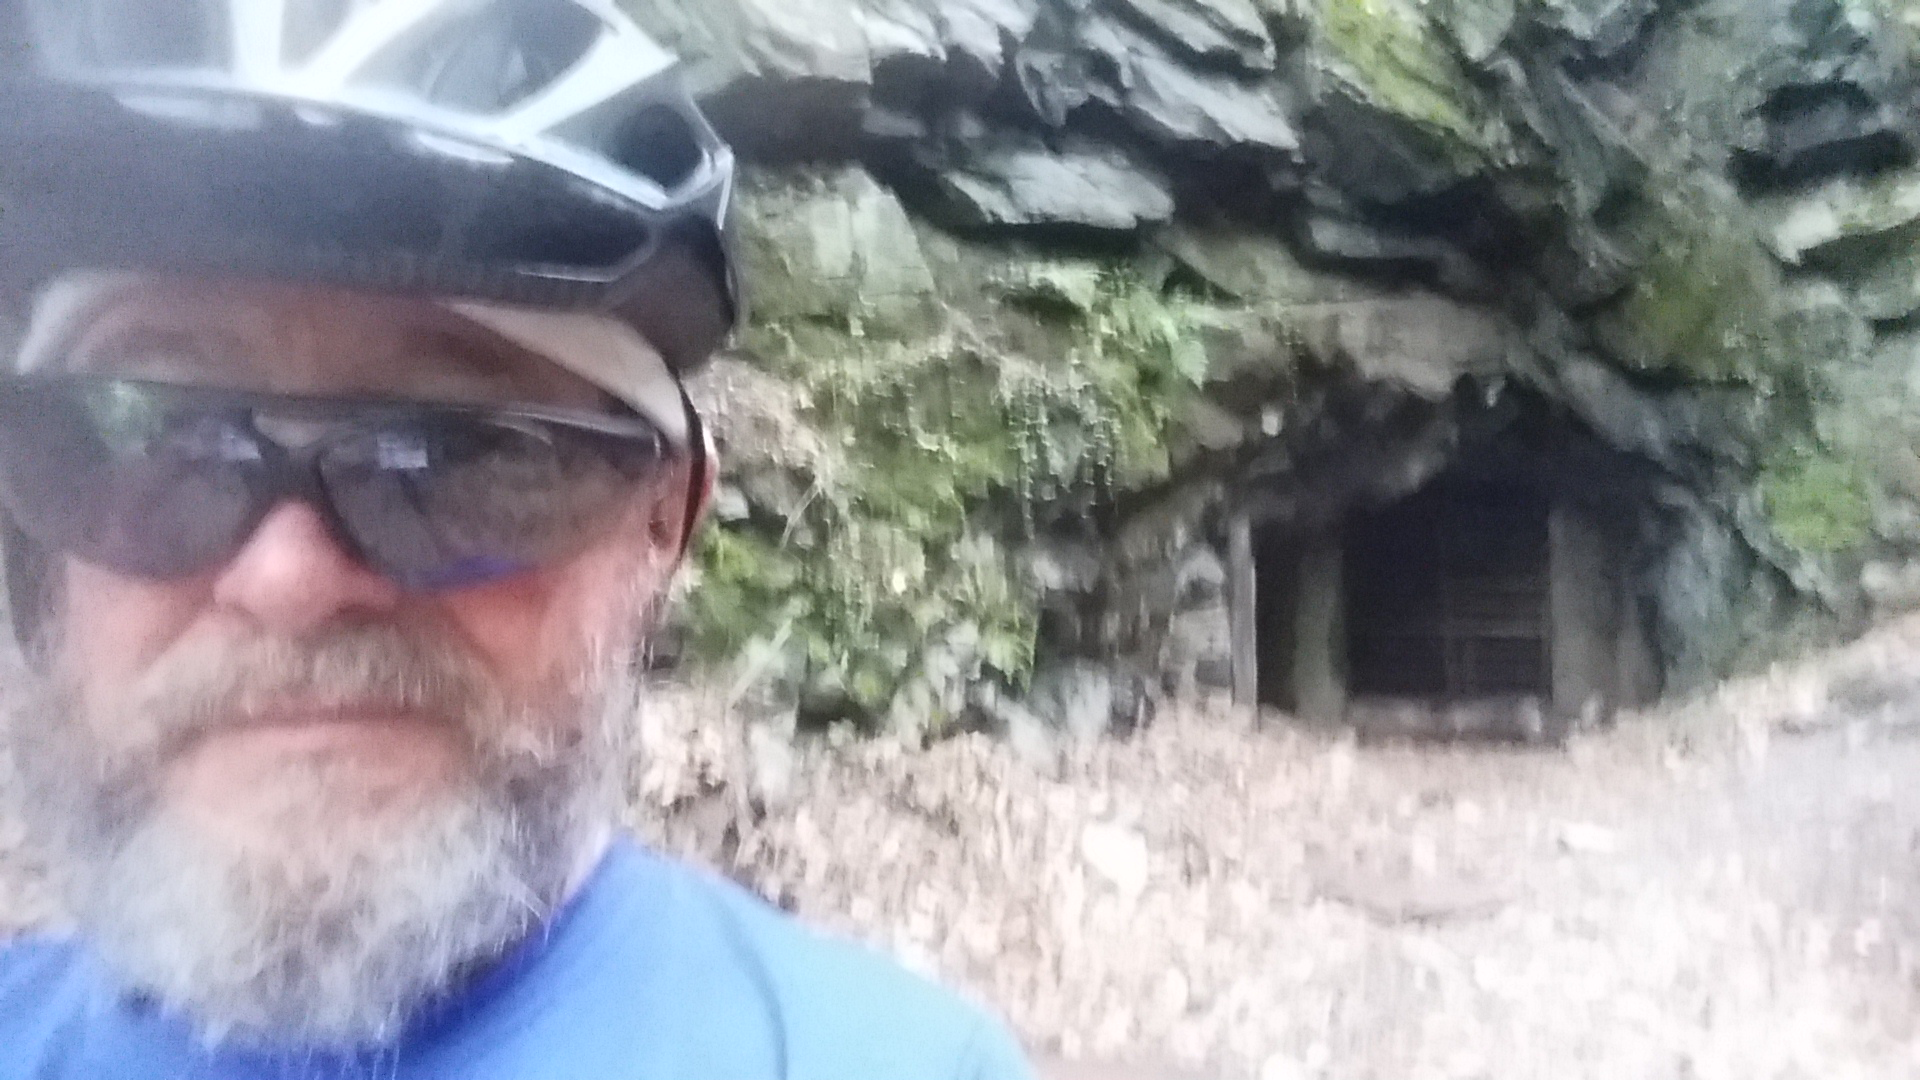 selfie by cave entrance